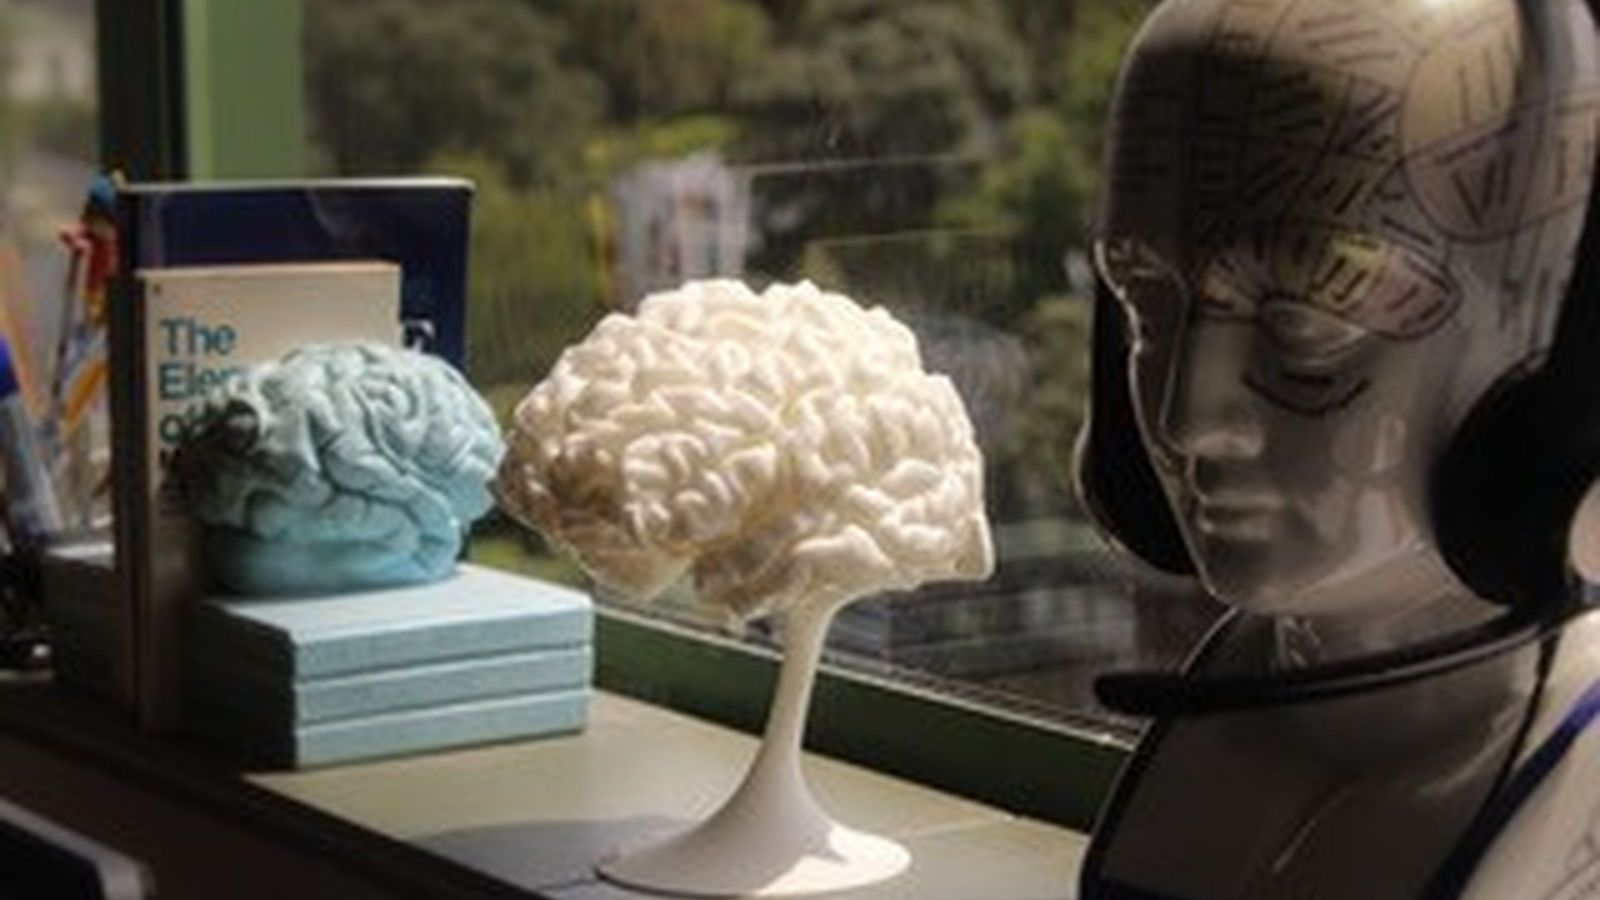 model of a brain sitting on a window ledge